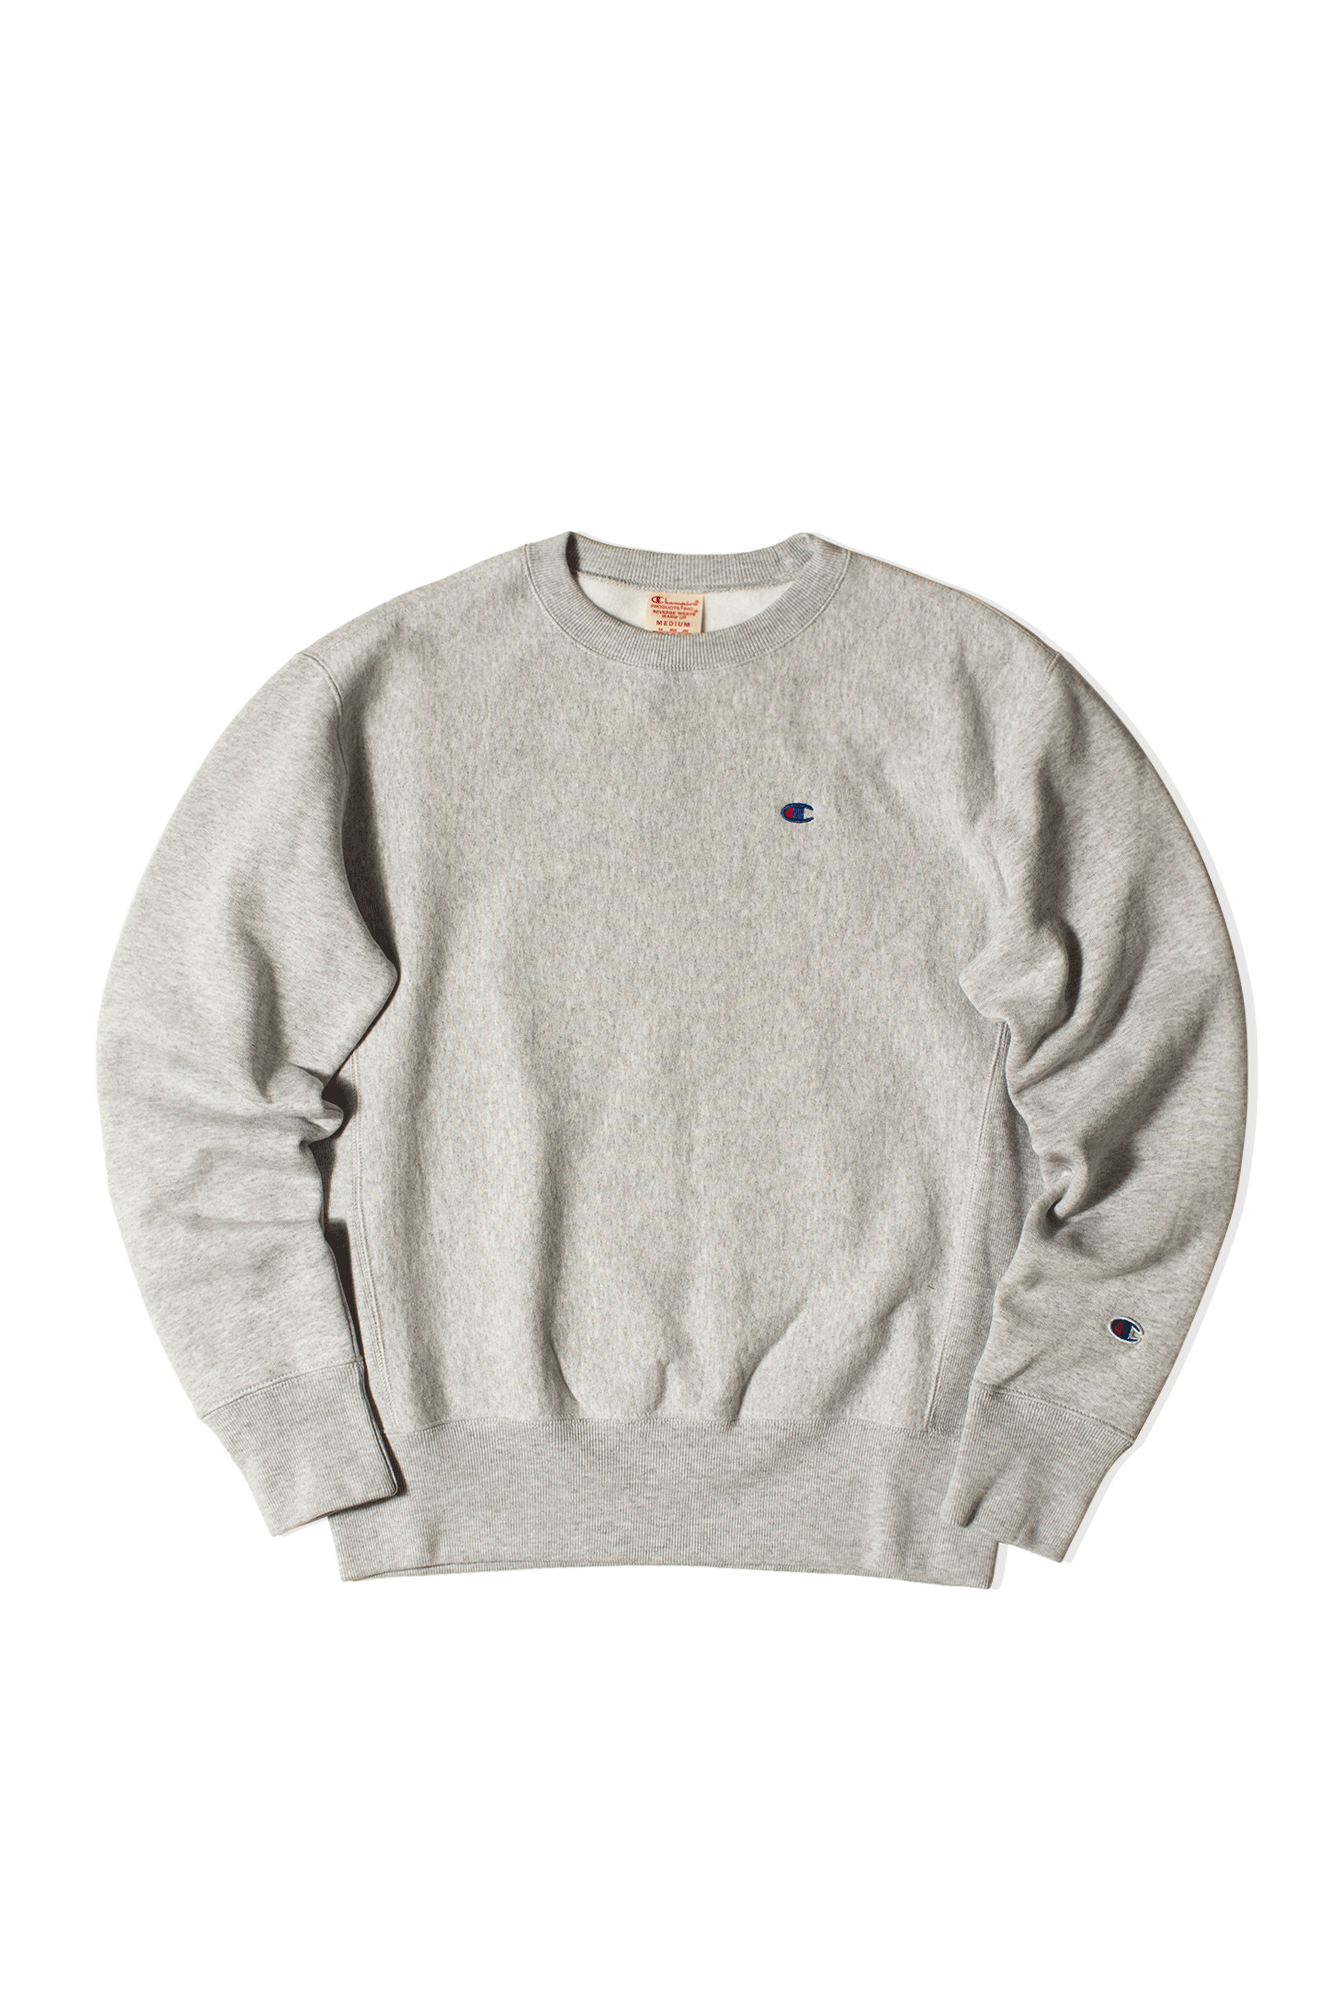 Champion Crewneck sweatshirts Crewneck Sweatshirt Grey 214676#000#EM004#M - One Block Down